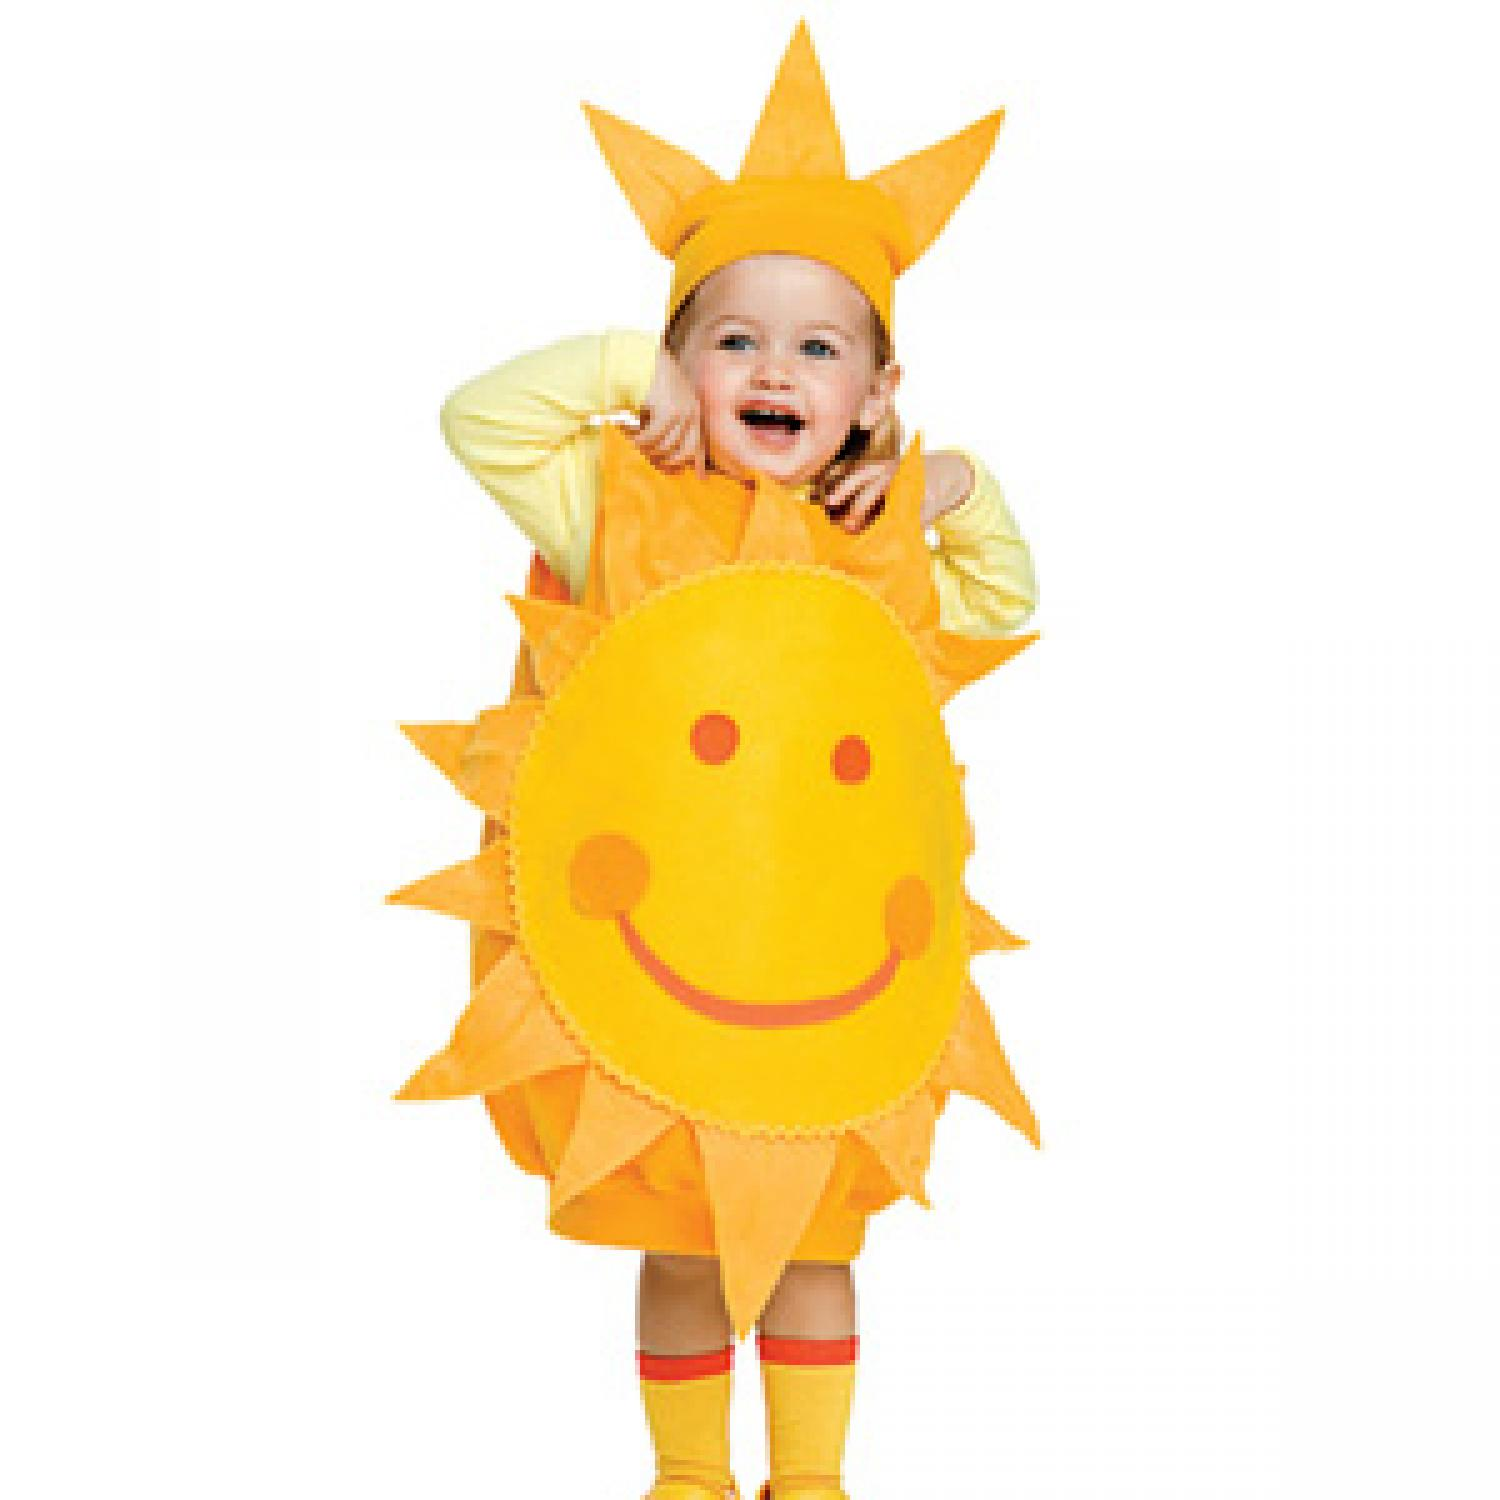 Here Comes Sun Costume Parenting